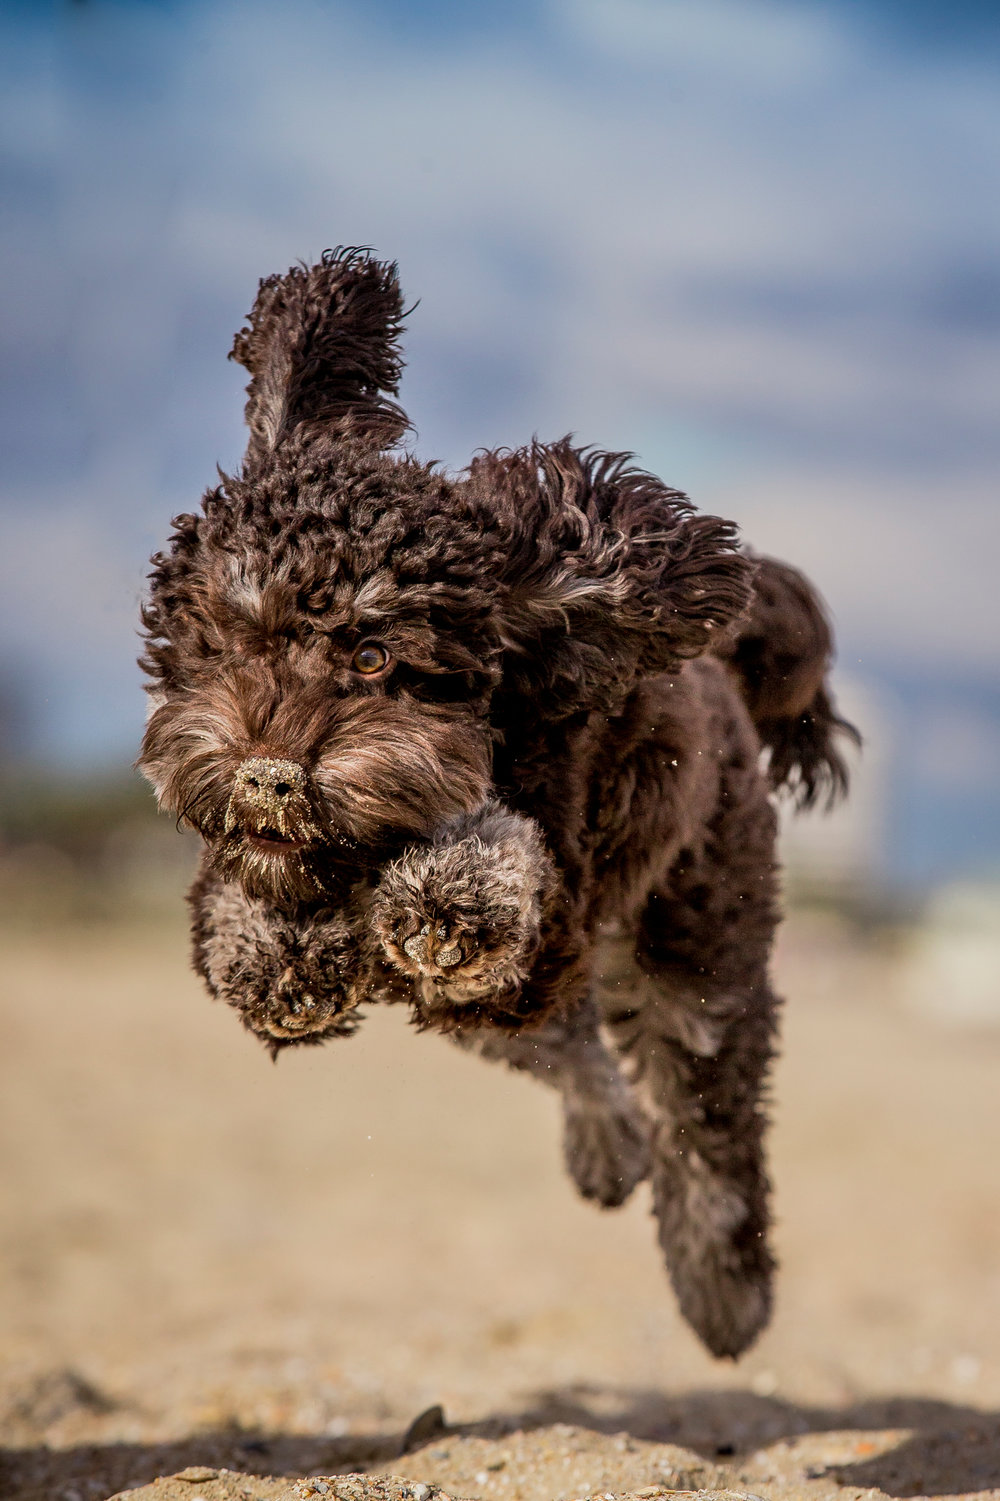 Lilo-ragamuffin-July_16(93)-edit-web.jpg